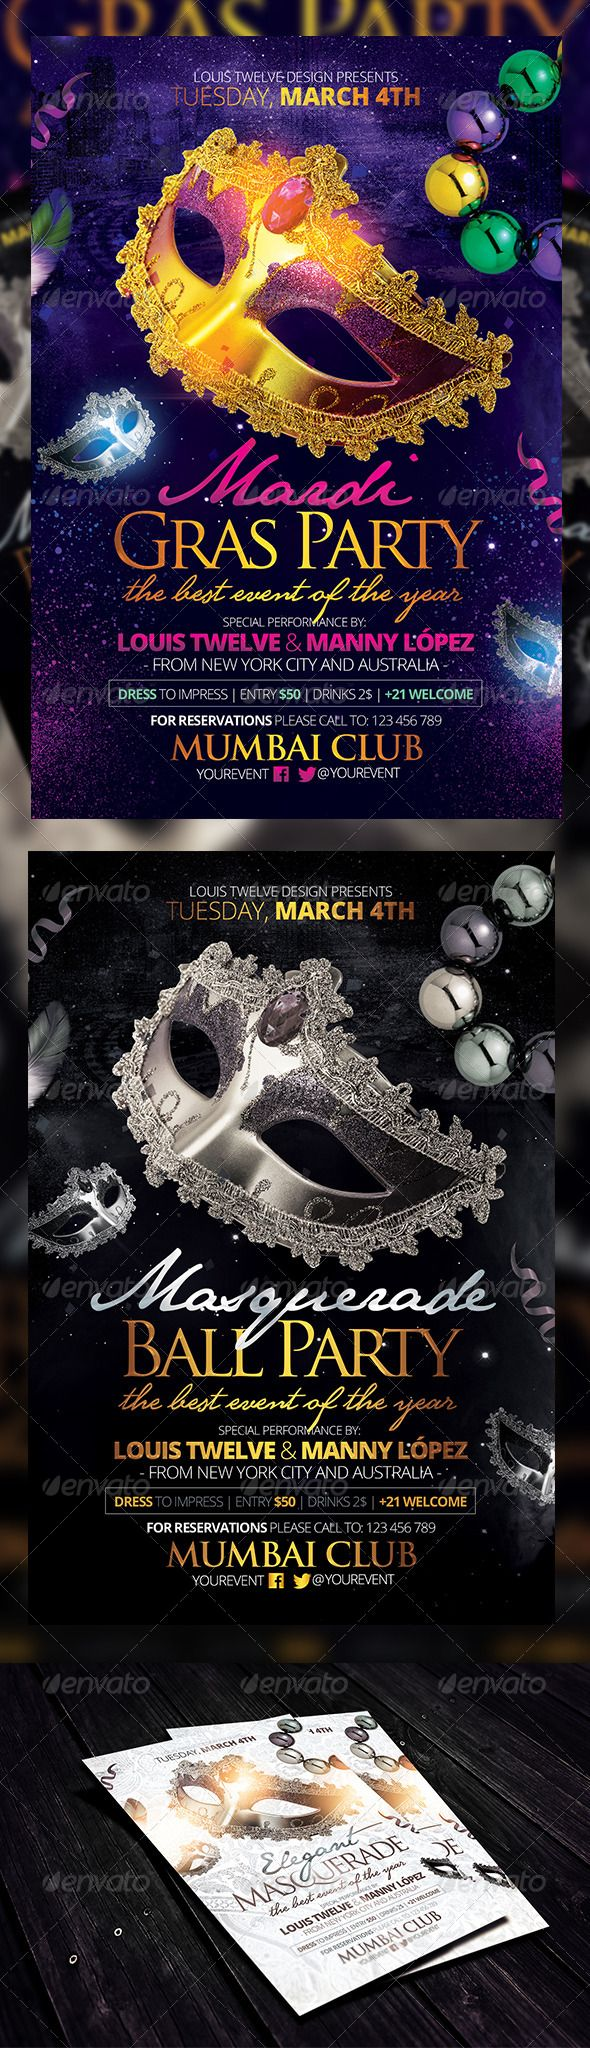 masquerade ball mardi gras party flyers template flyers template